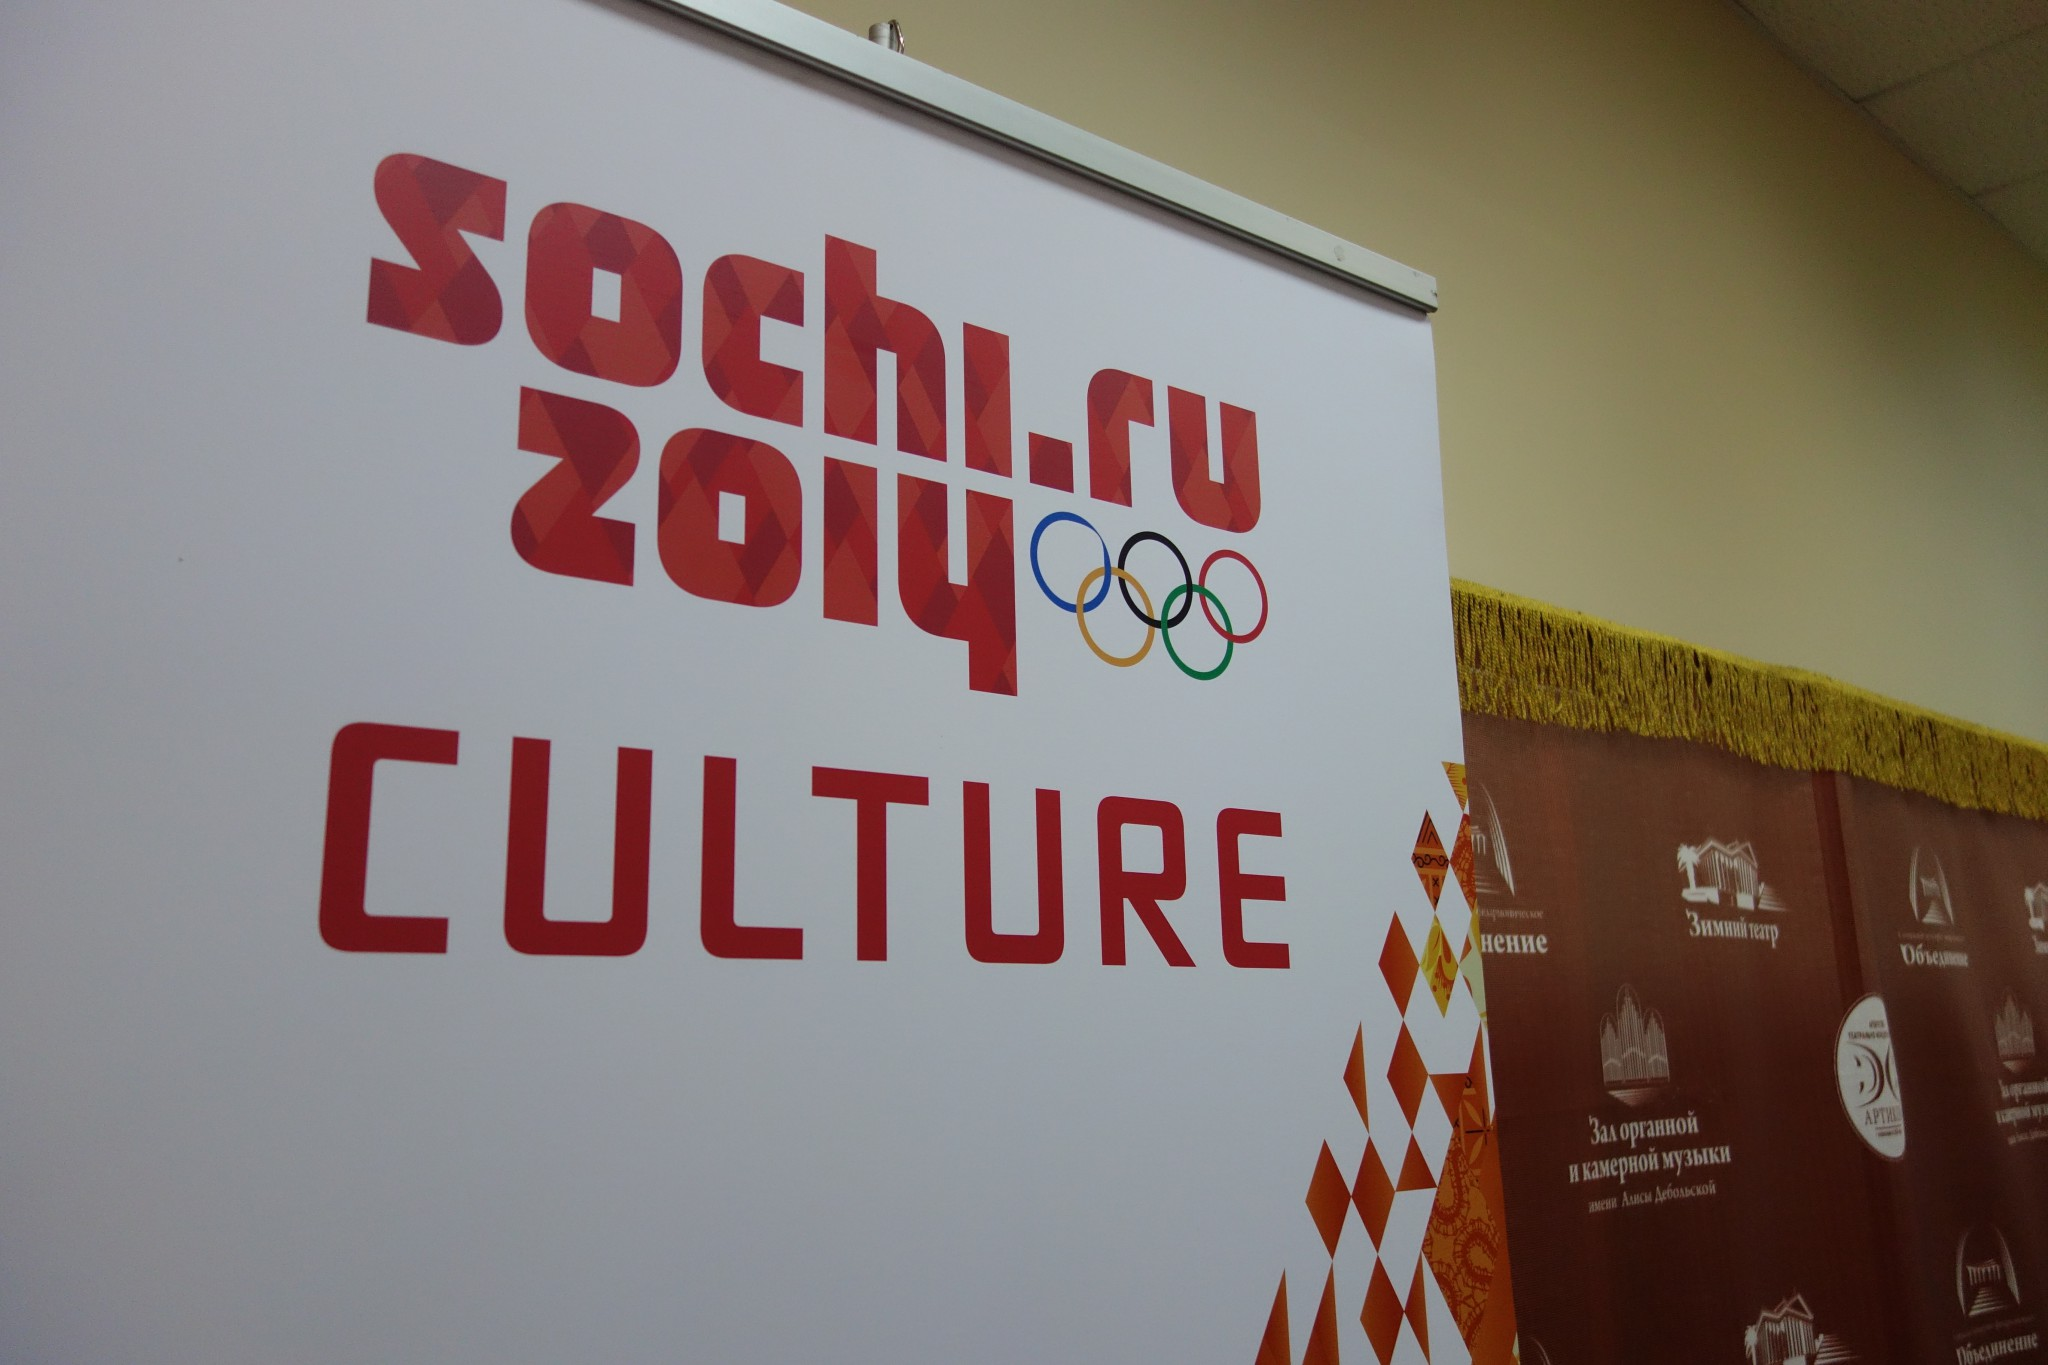 olympic games dr beatriz garc iacute a daily reporting on the cultural dimensions of the sochi 2014 olympic winter games